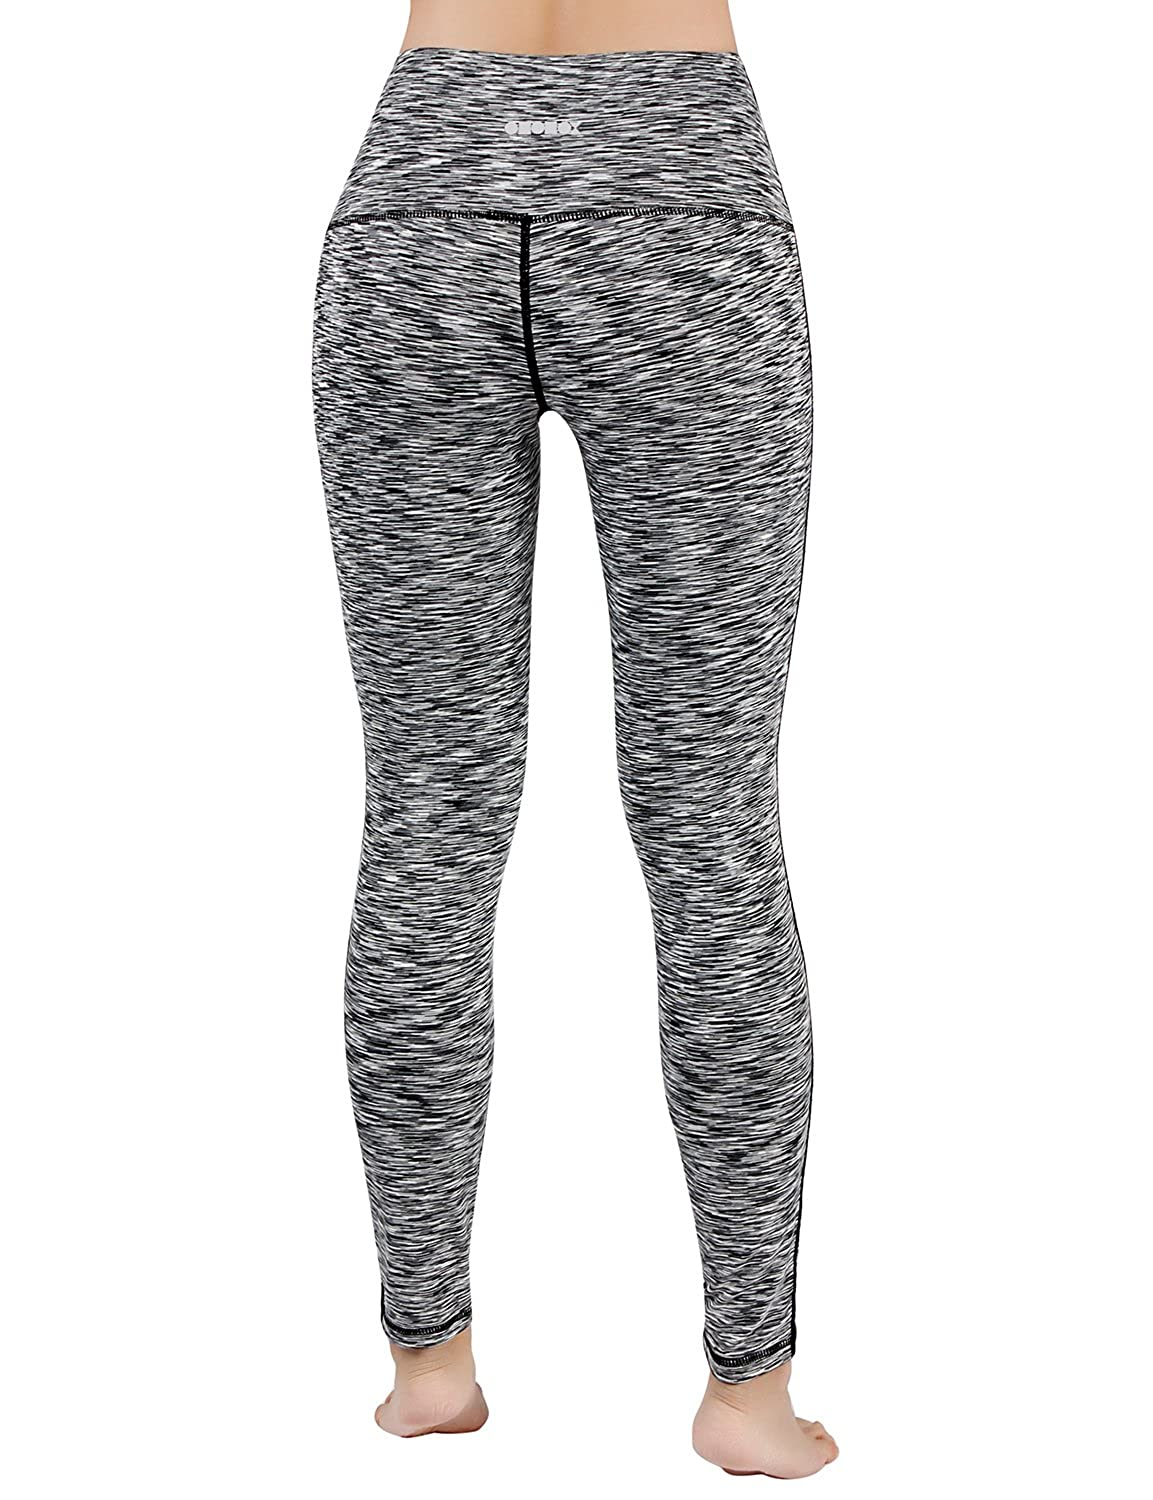 ODODOS Womens High Waisted Tummy Control Yoga Pants,Full-Length Leggings with Inner Pockets